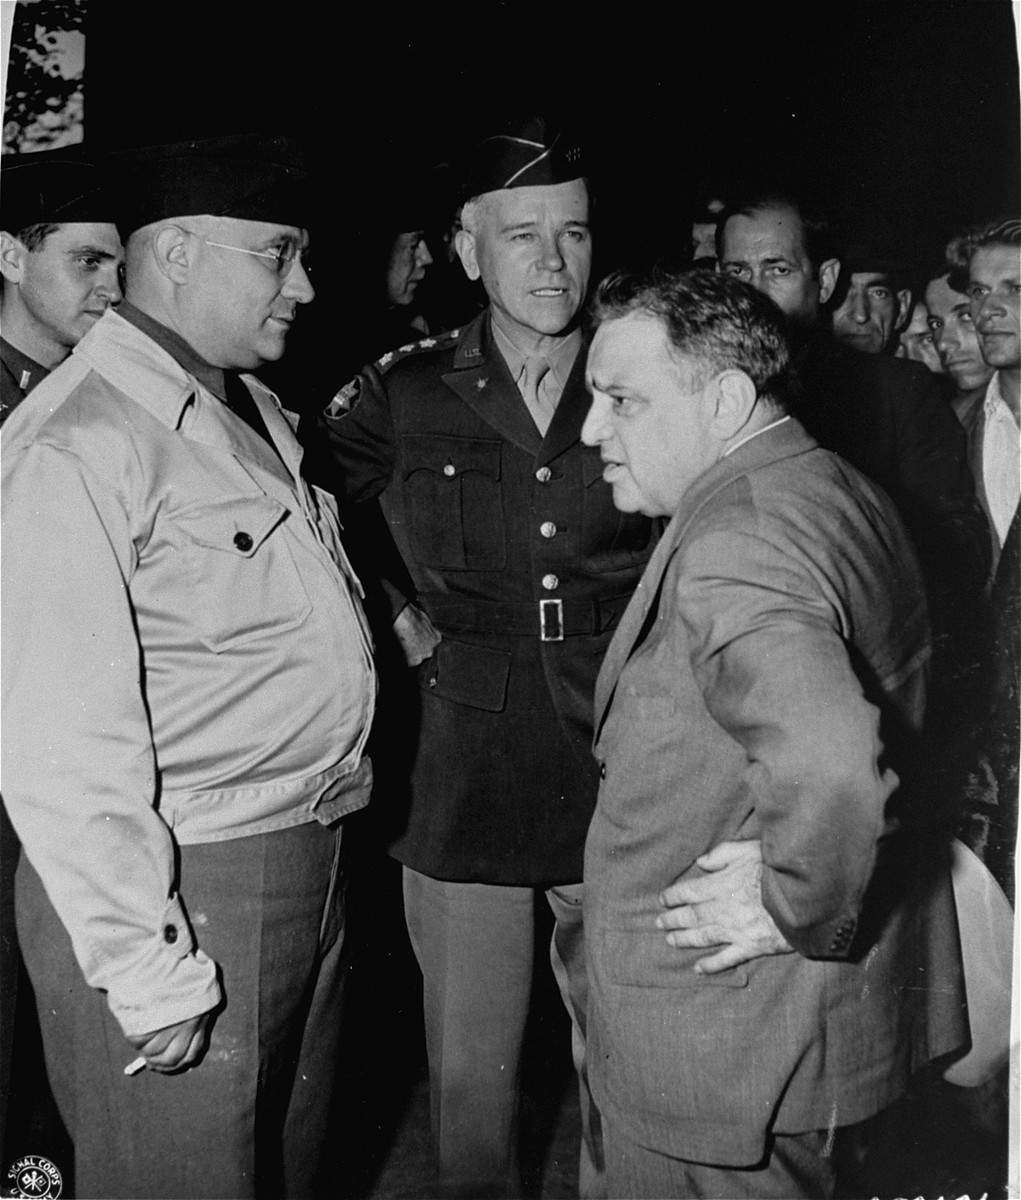 UNRRA Director General Fiorello LaGuardia speaks to General J. Lawton Collins (center) and UNRRA Schlachtensee camp director Harold Fishbein (left) during an official tour of the Schlachtensee displaced persons camp.  Also pictured in partially obscured on the left is Rabbi Mayer Abramowitz.